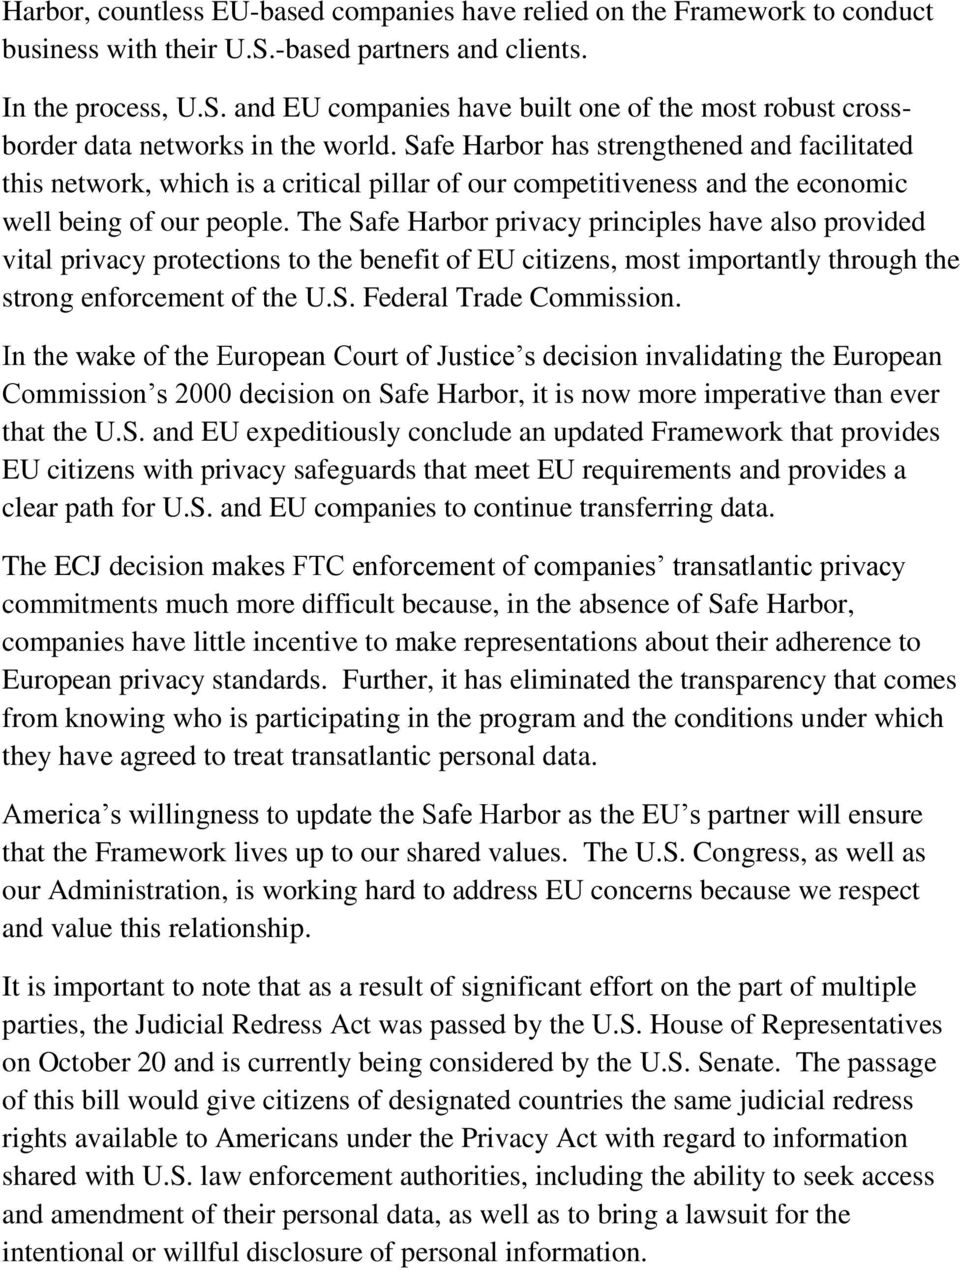 The Safe Harbor privacy principles have also provided vital privacy protections to the benefit of EU citizens, most importantly through the strong enforcement of the U.S. Federal Trade Commission.